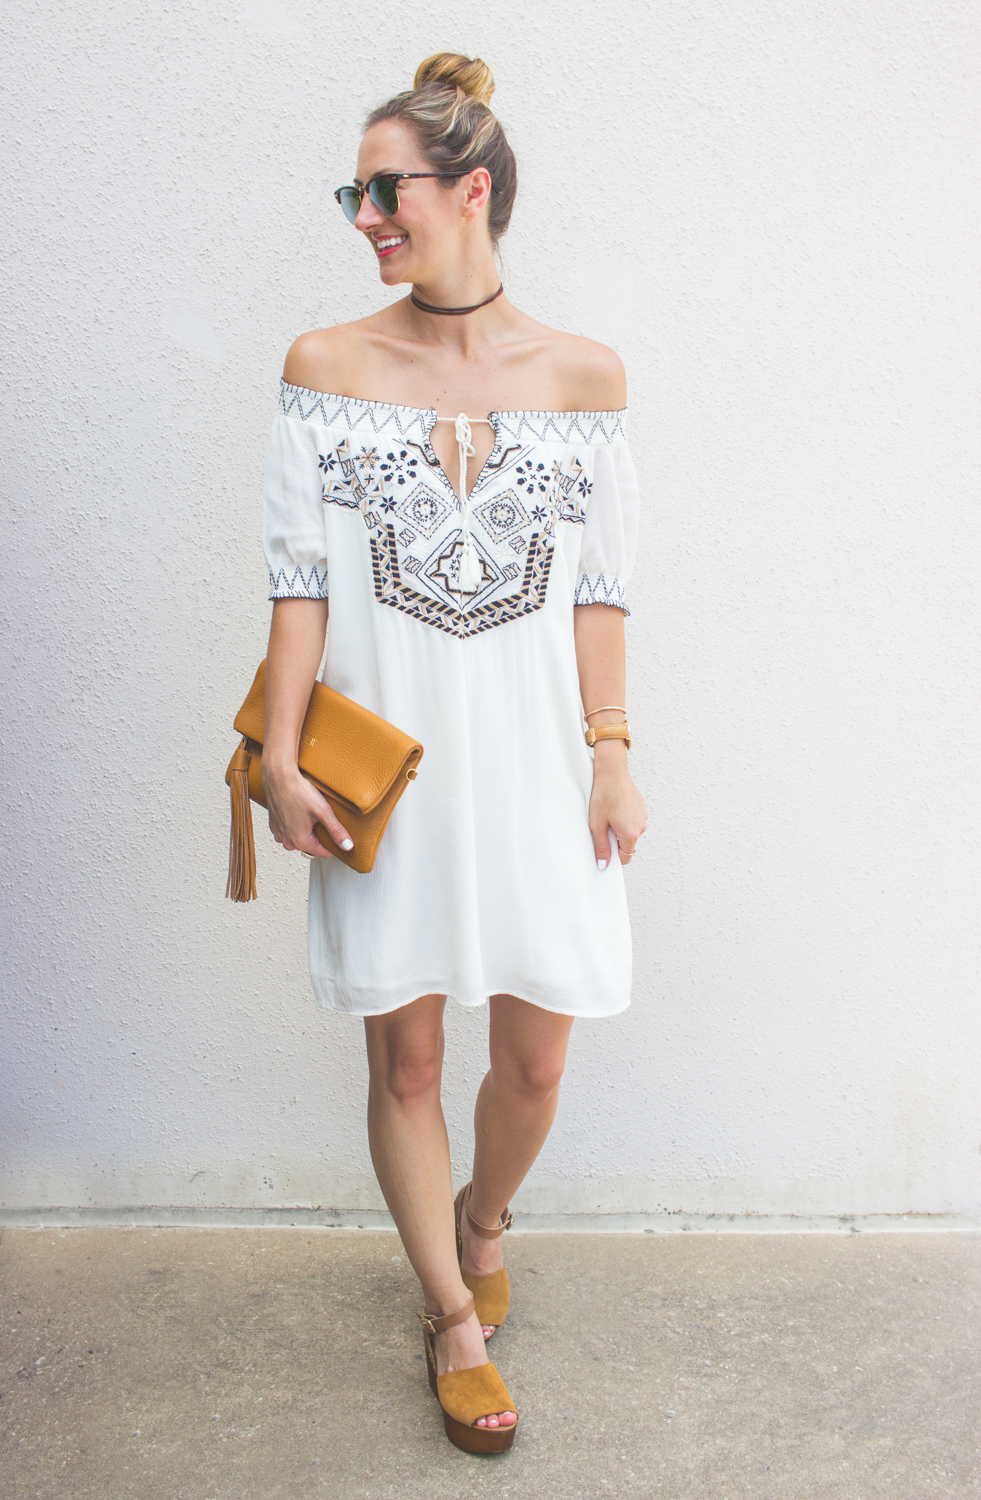 livvyland-blog-olivia-watson-austin-texas-fashion-blogger-abercrombie-and-fitch-embroidered-off-shoulder-dress-seychelles-platform-wedge-sandals-boho-outfit-ray-ban-reflective-clubmaster-summer-outfit-7